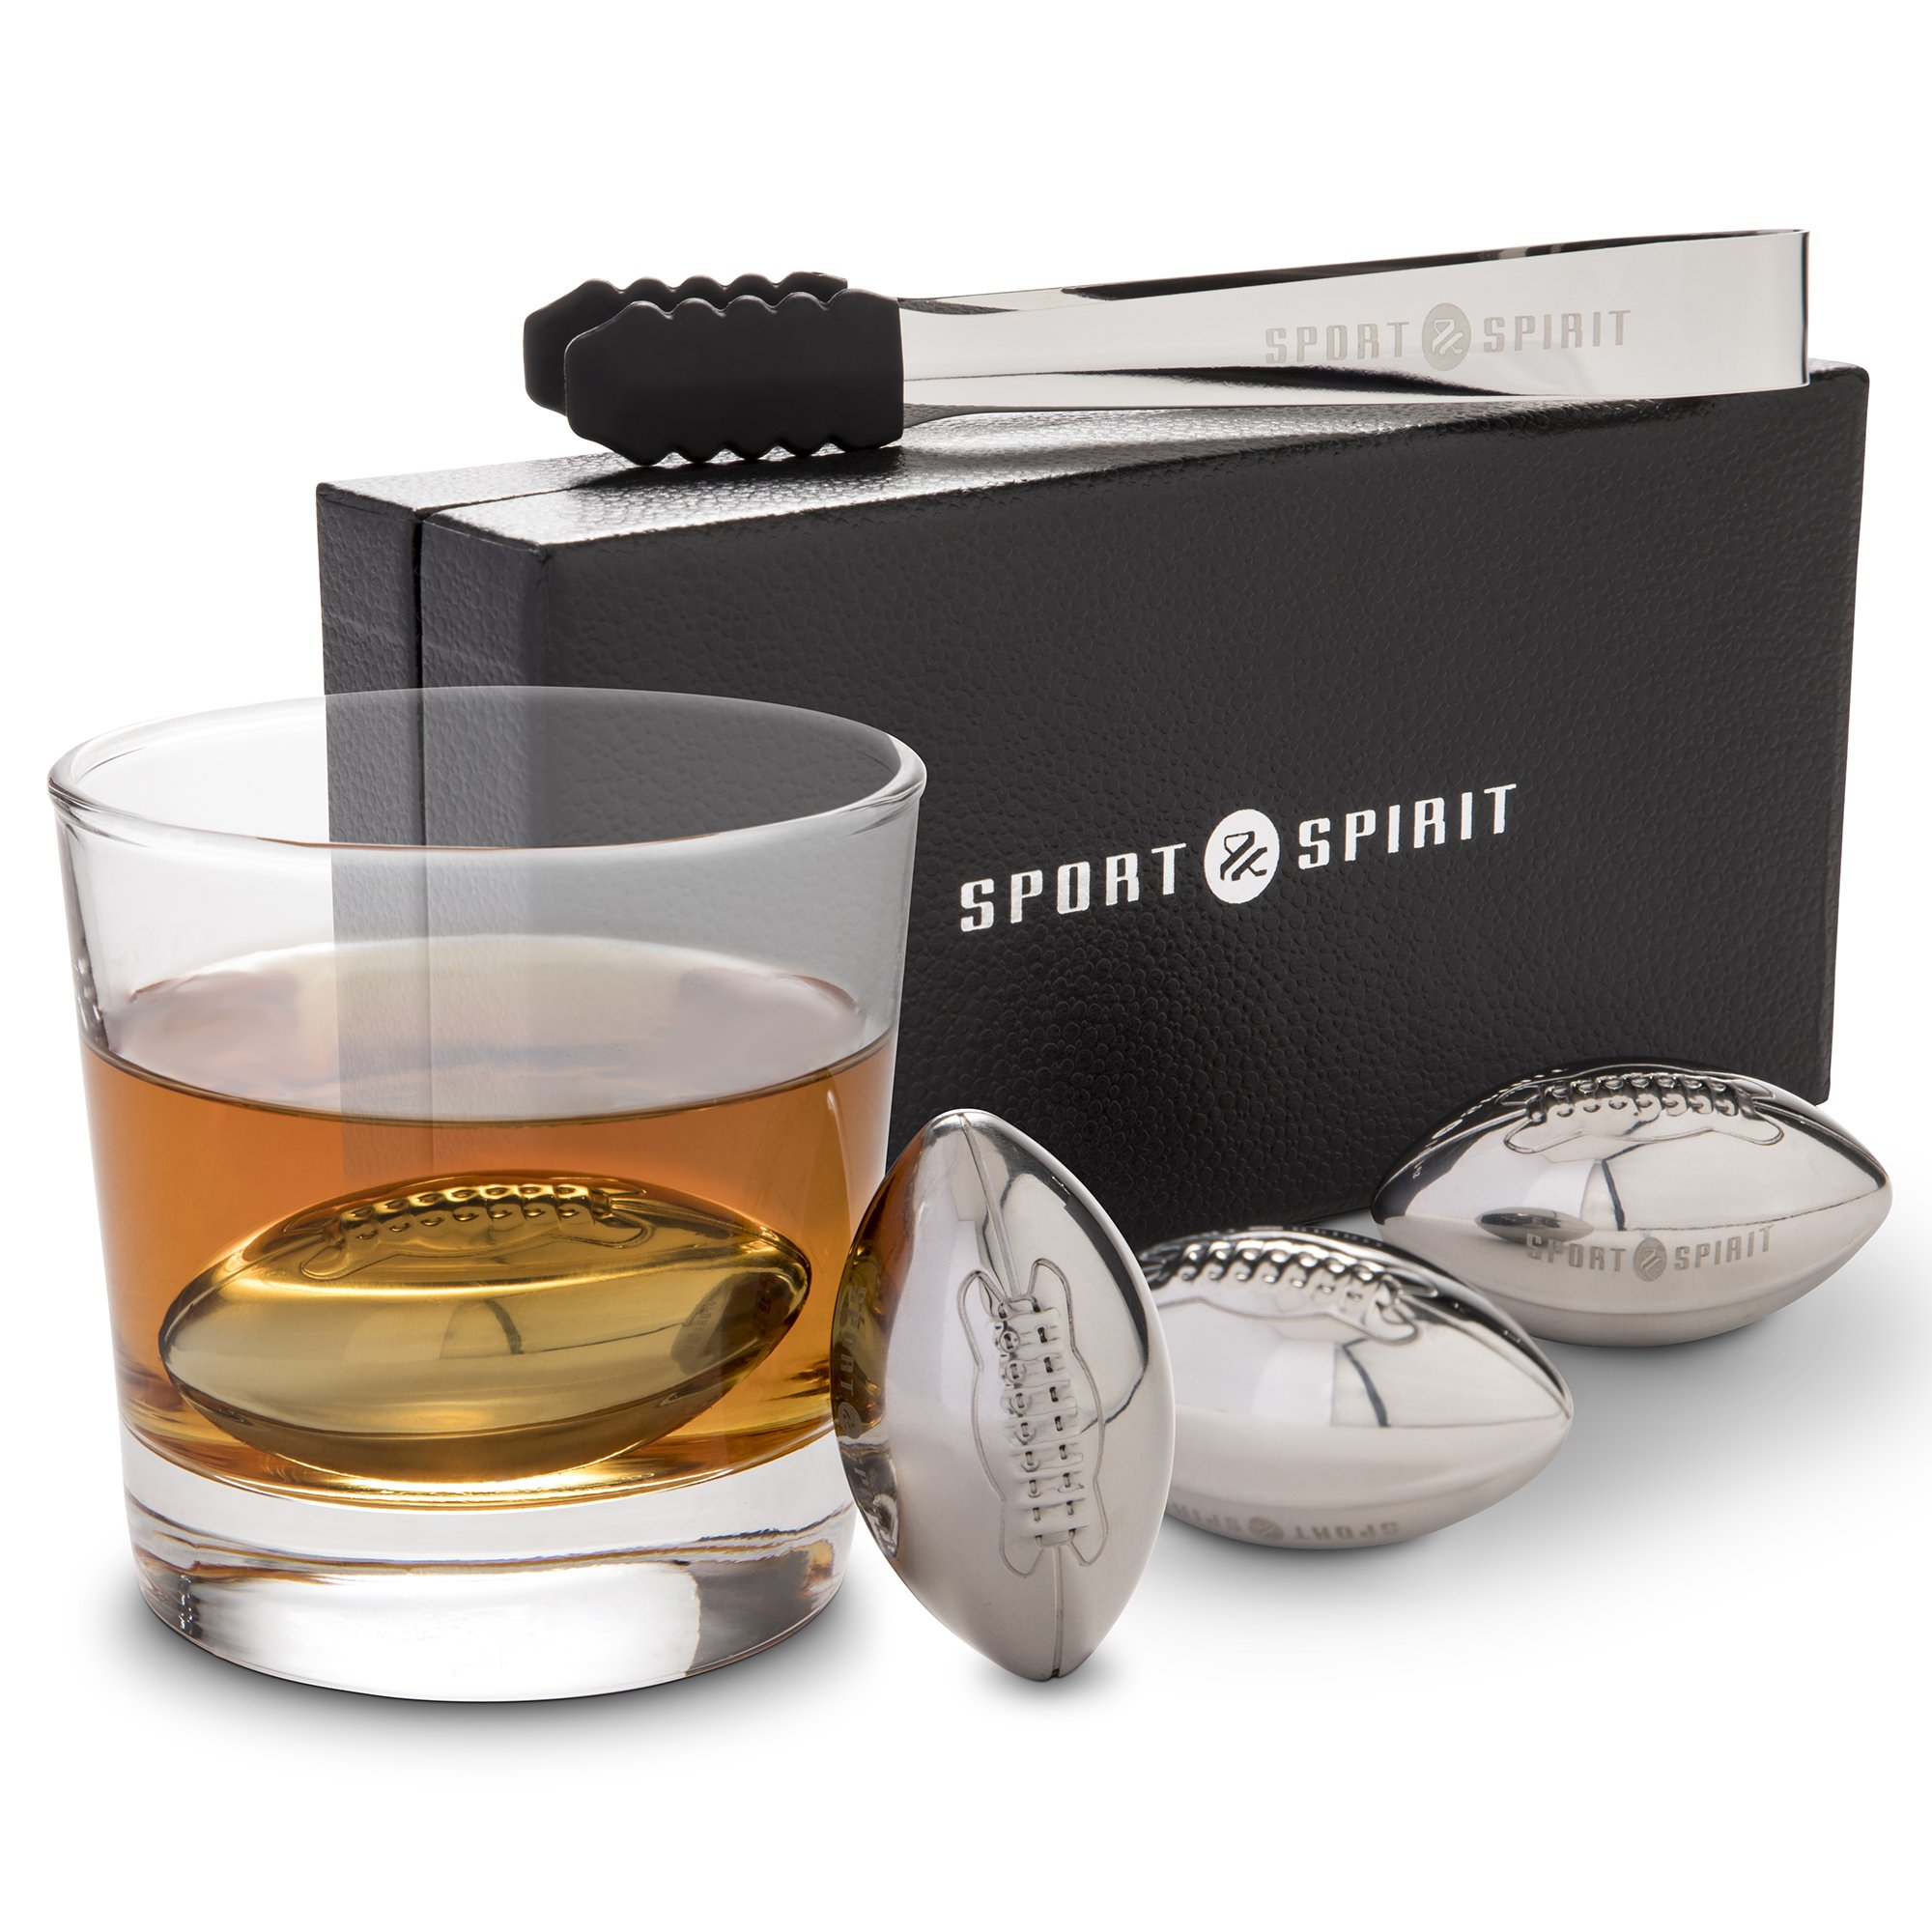 Stainless Steel Whiskey Stones | 4 Piece Whisky Chilling Stones for Liquor, Scotch, and Spirits | 4 Drink Cubes with Tongs, Drawstring Case and Luxurious Box | Reusable Beverage Cooling Rocks